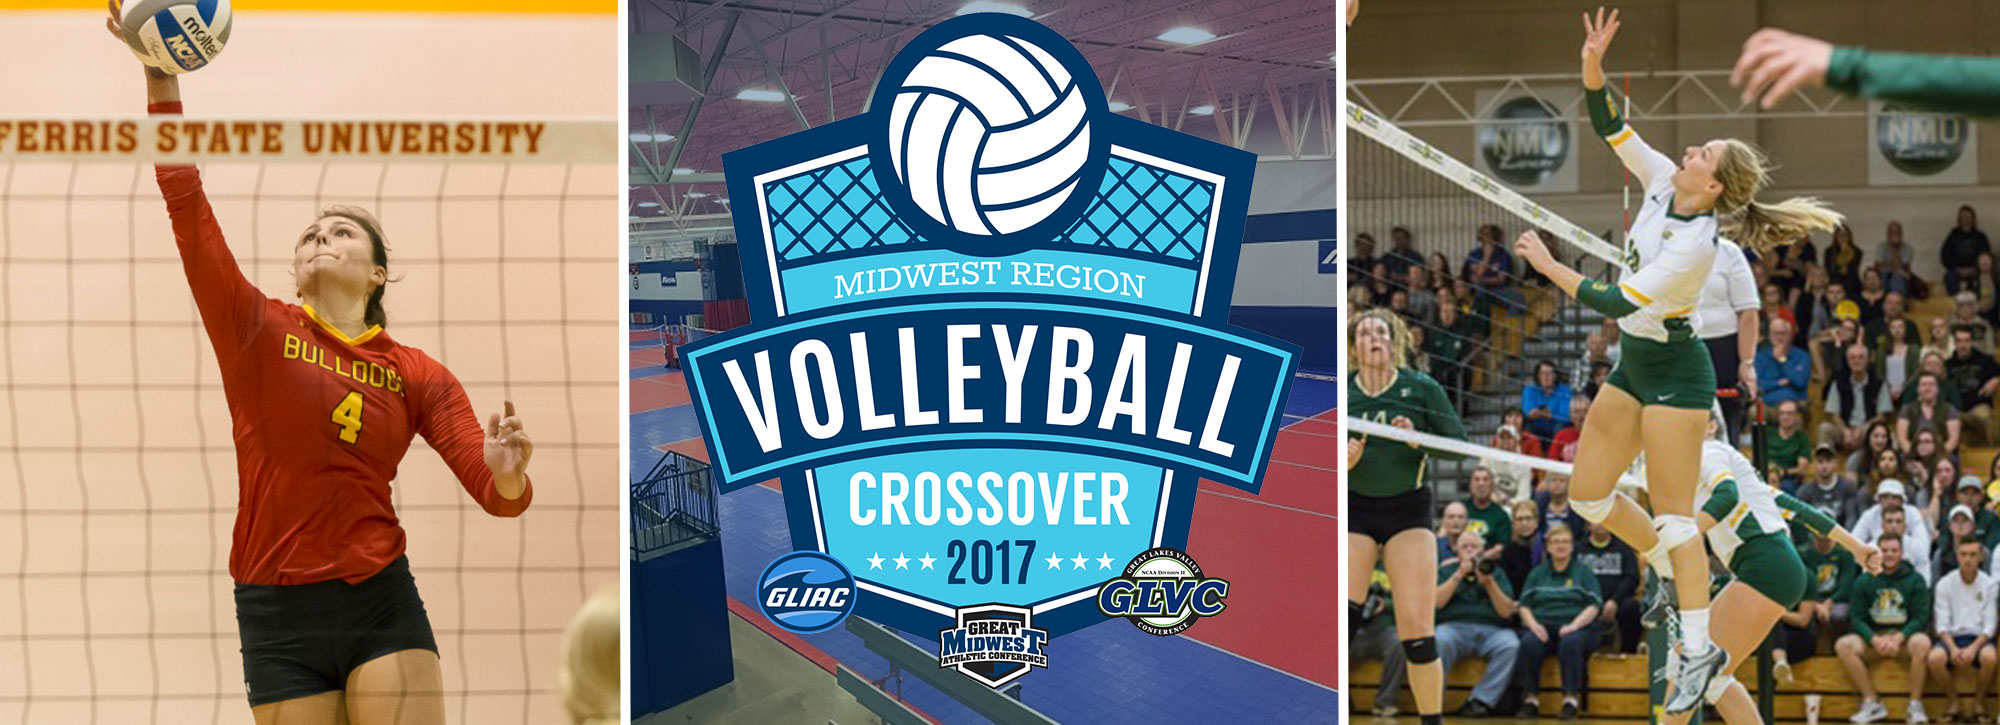 Stage Set for 2017 Midwest Region Volleyball Crossover Weekend